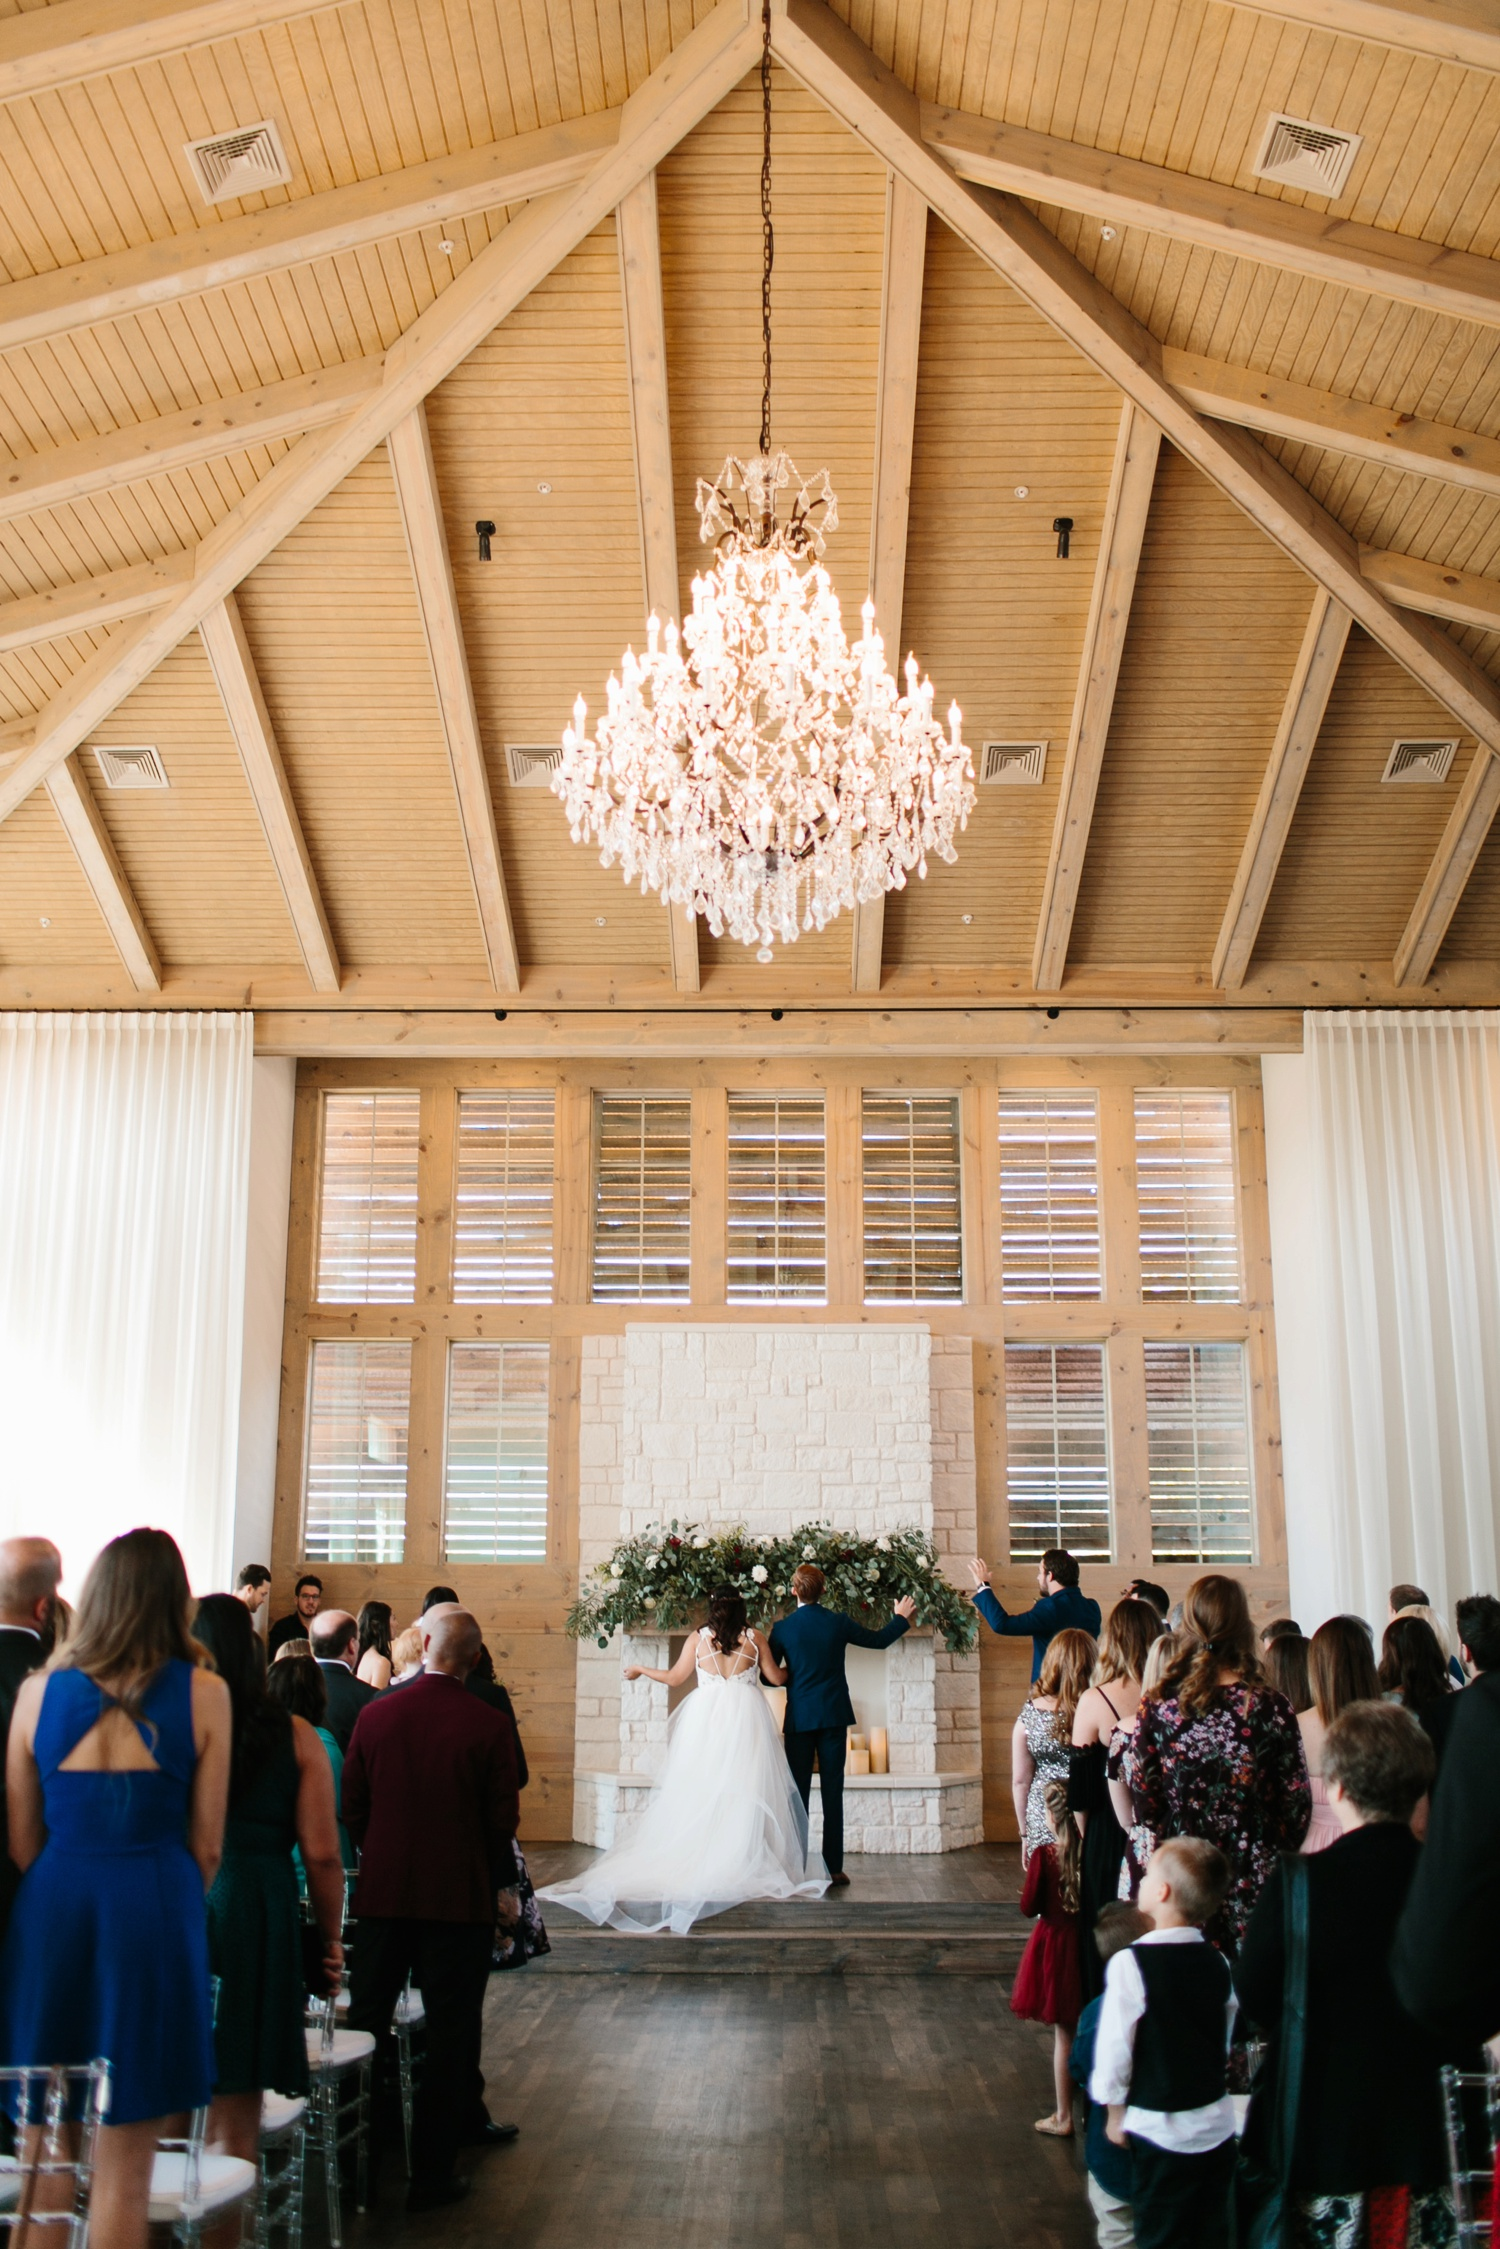 Grant + Lysette | a vibrant, deep burgundy and navy, and mixed metals wedding at Hidden Pines Chapel by North Texas Wedding Photographer Rachel Meagan Photography 071